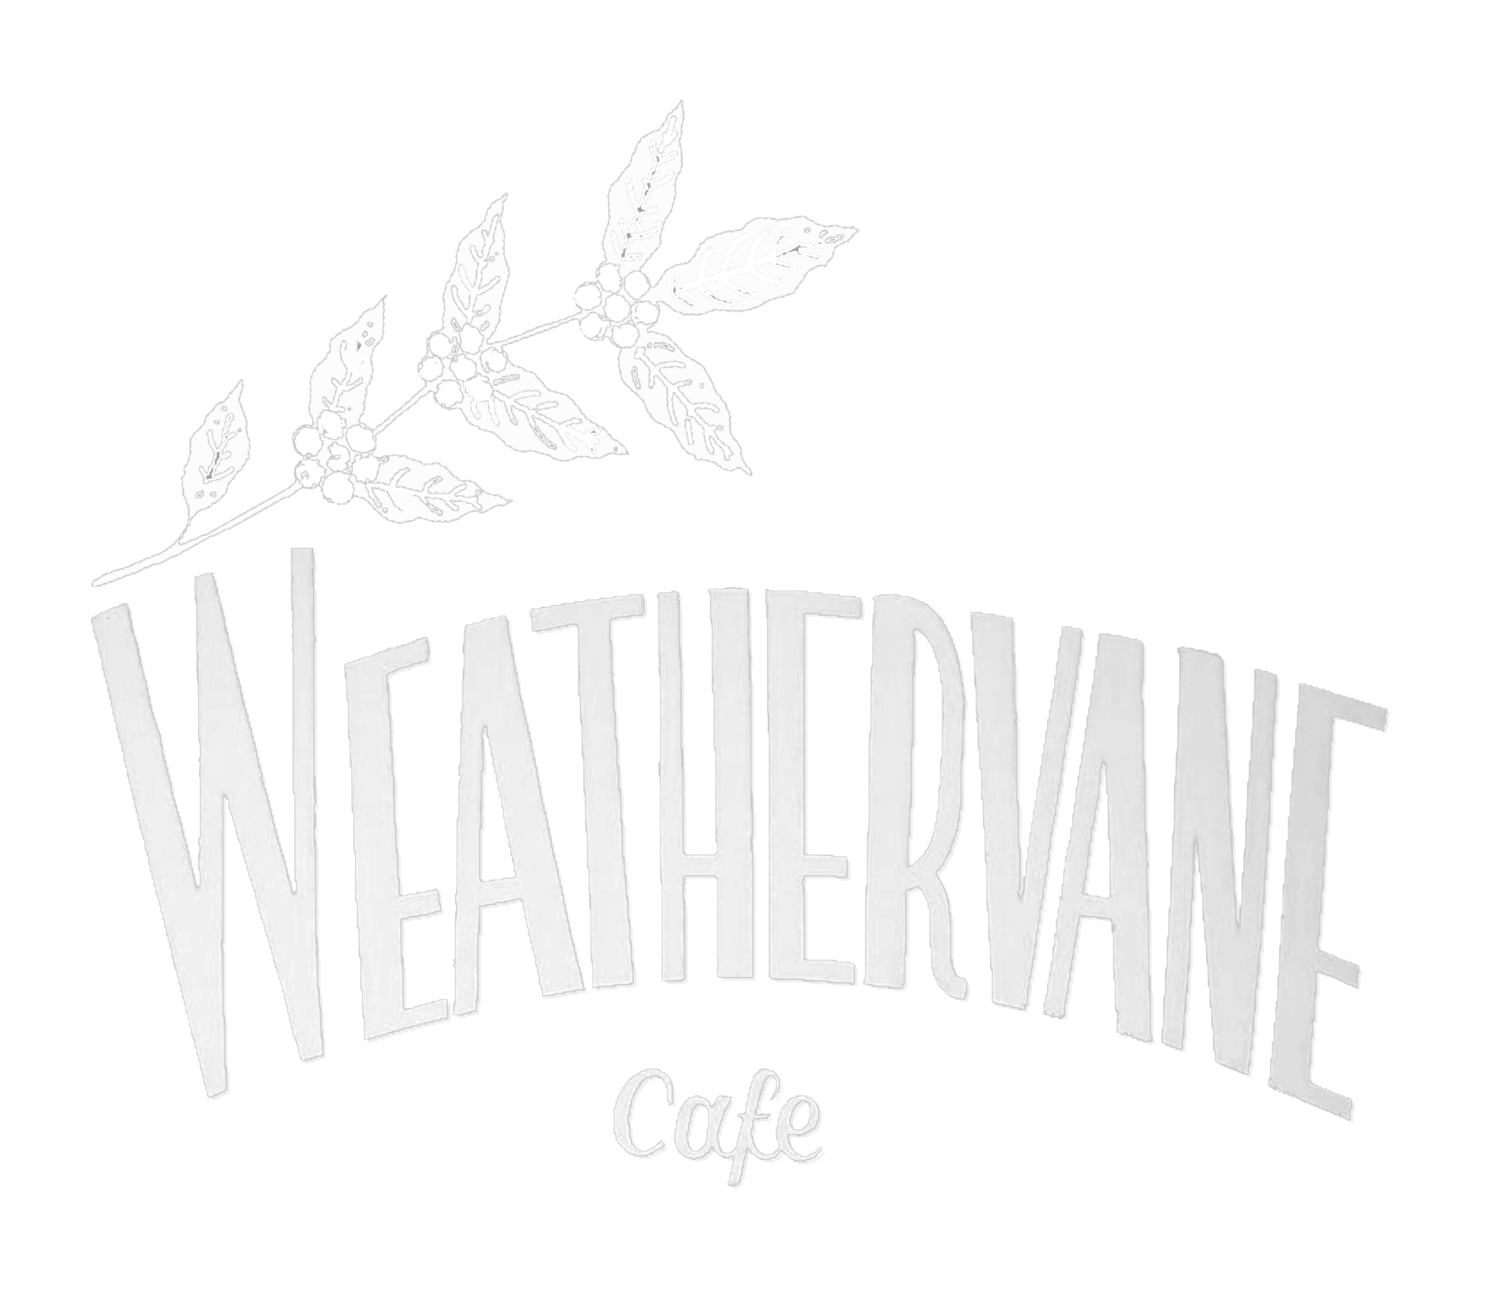 The Weathervane Cafe